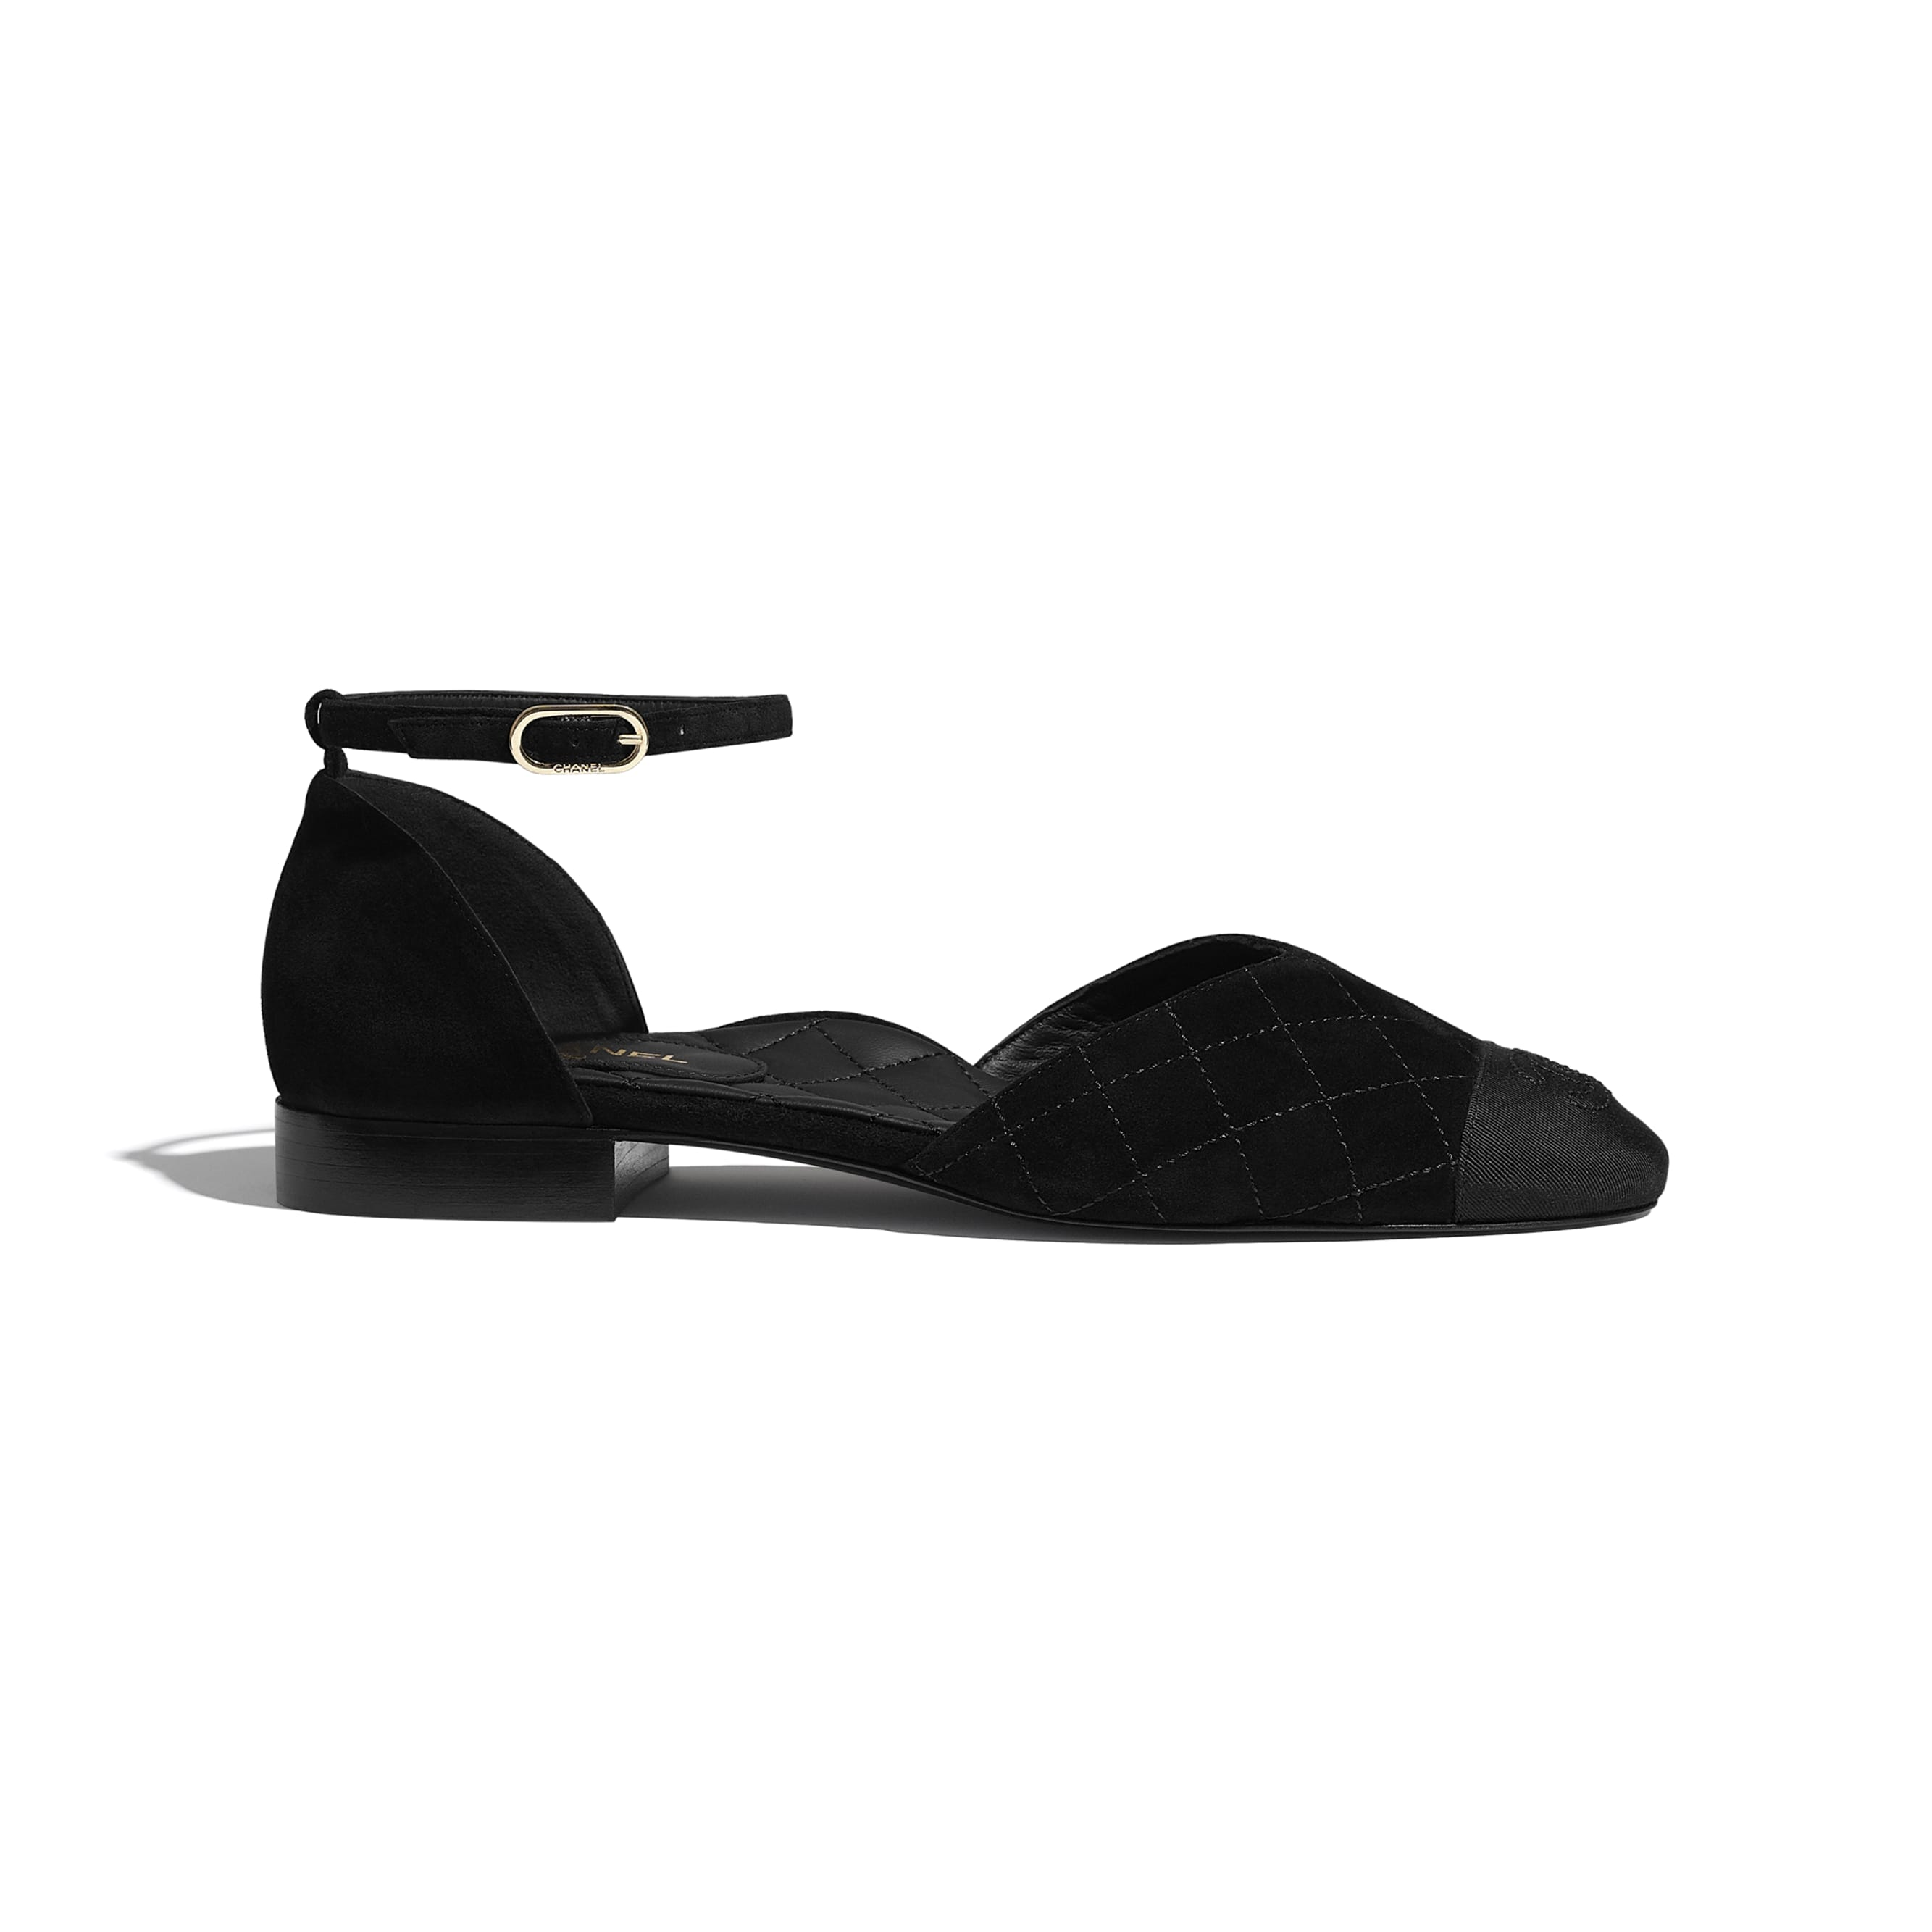 Mary Janes  - Black - Suede Calfskin & Grosgrain - CHANEL - Default view - see standard sized version